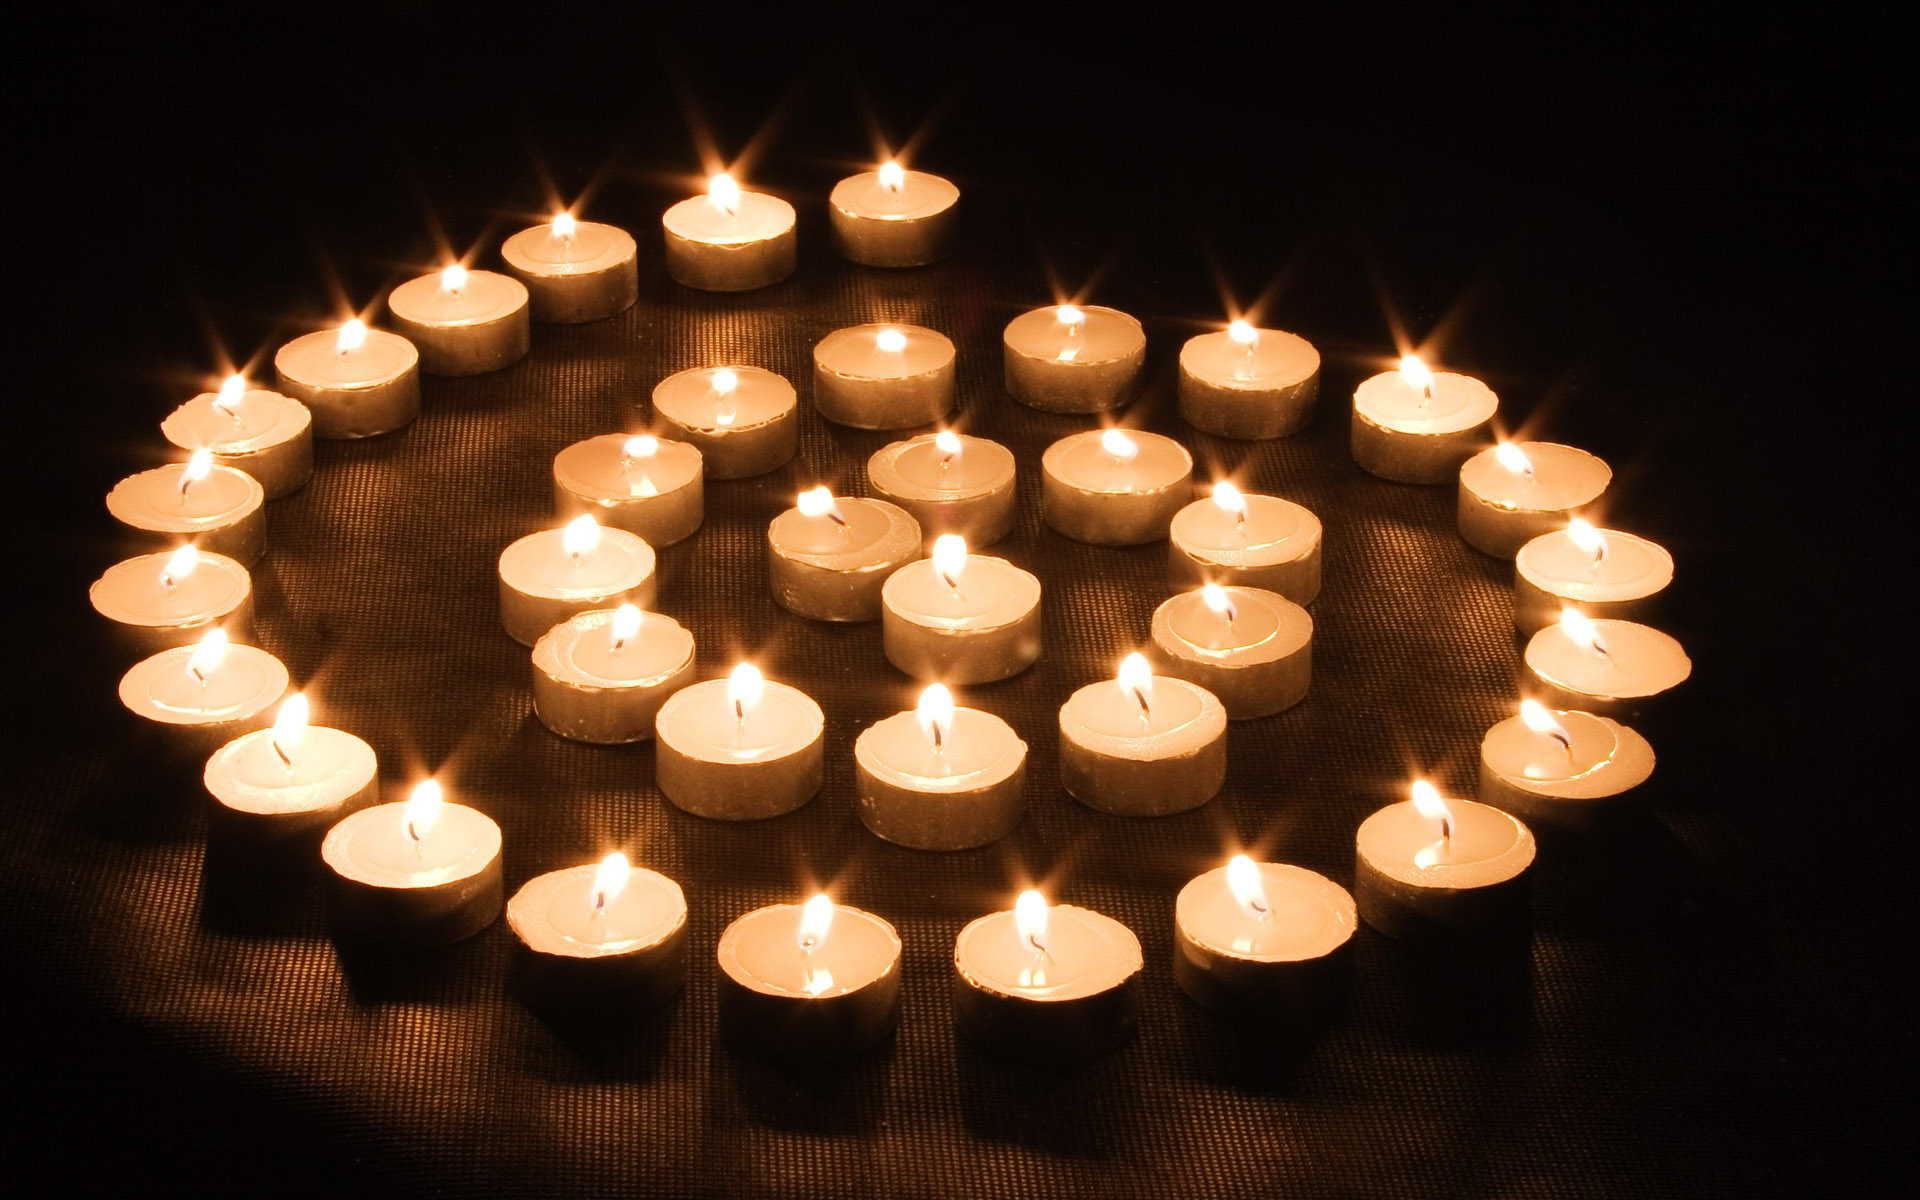 Candle wallpaper 6677